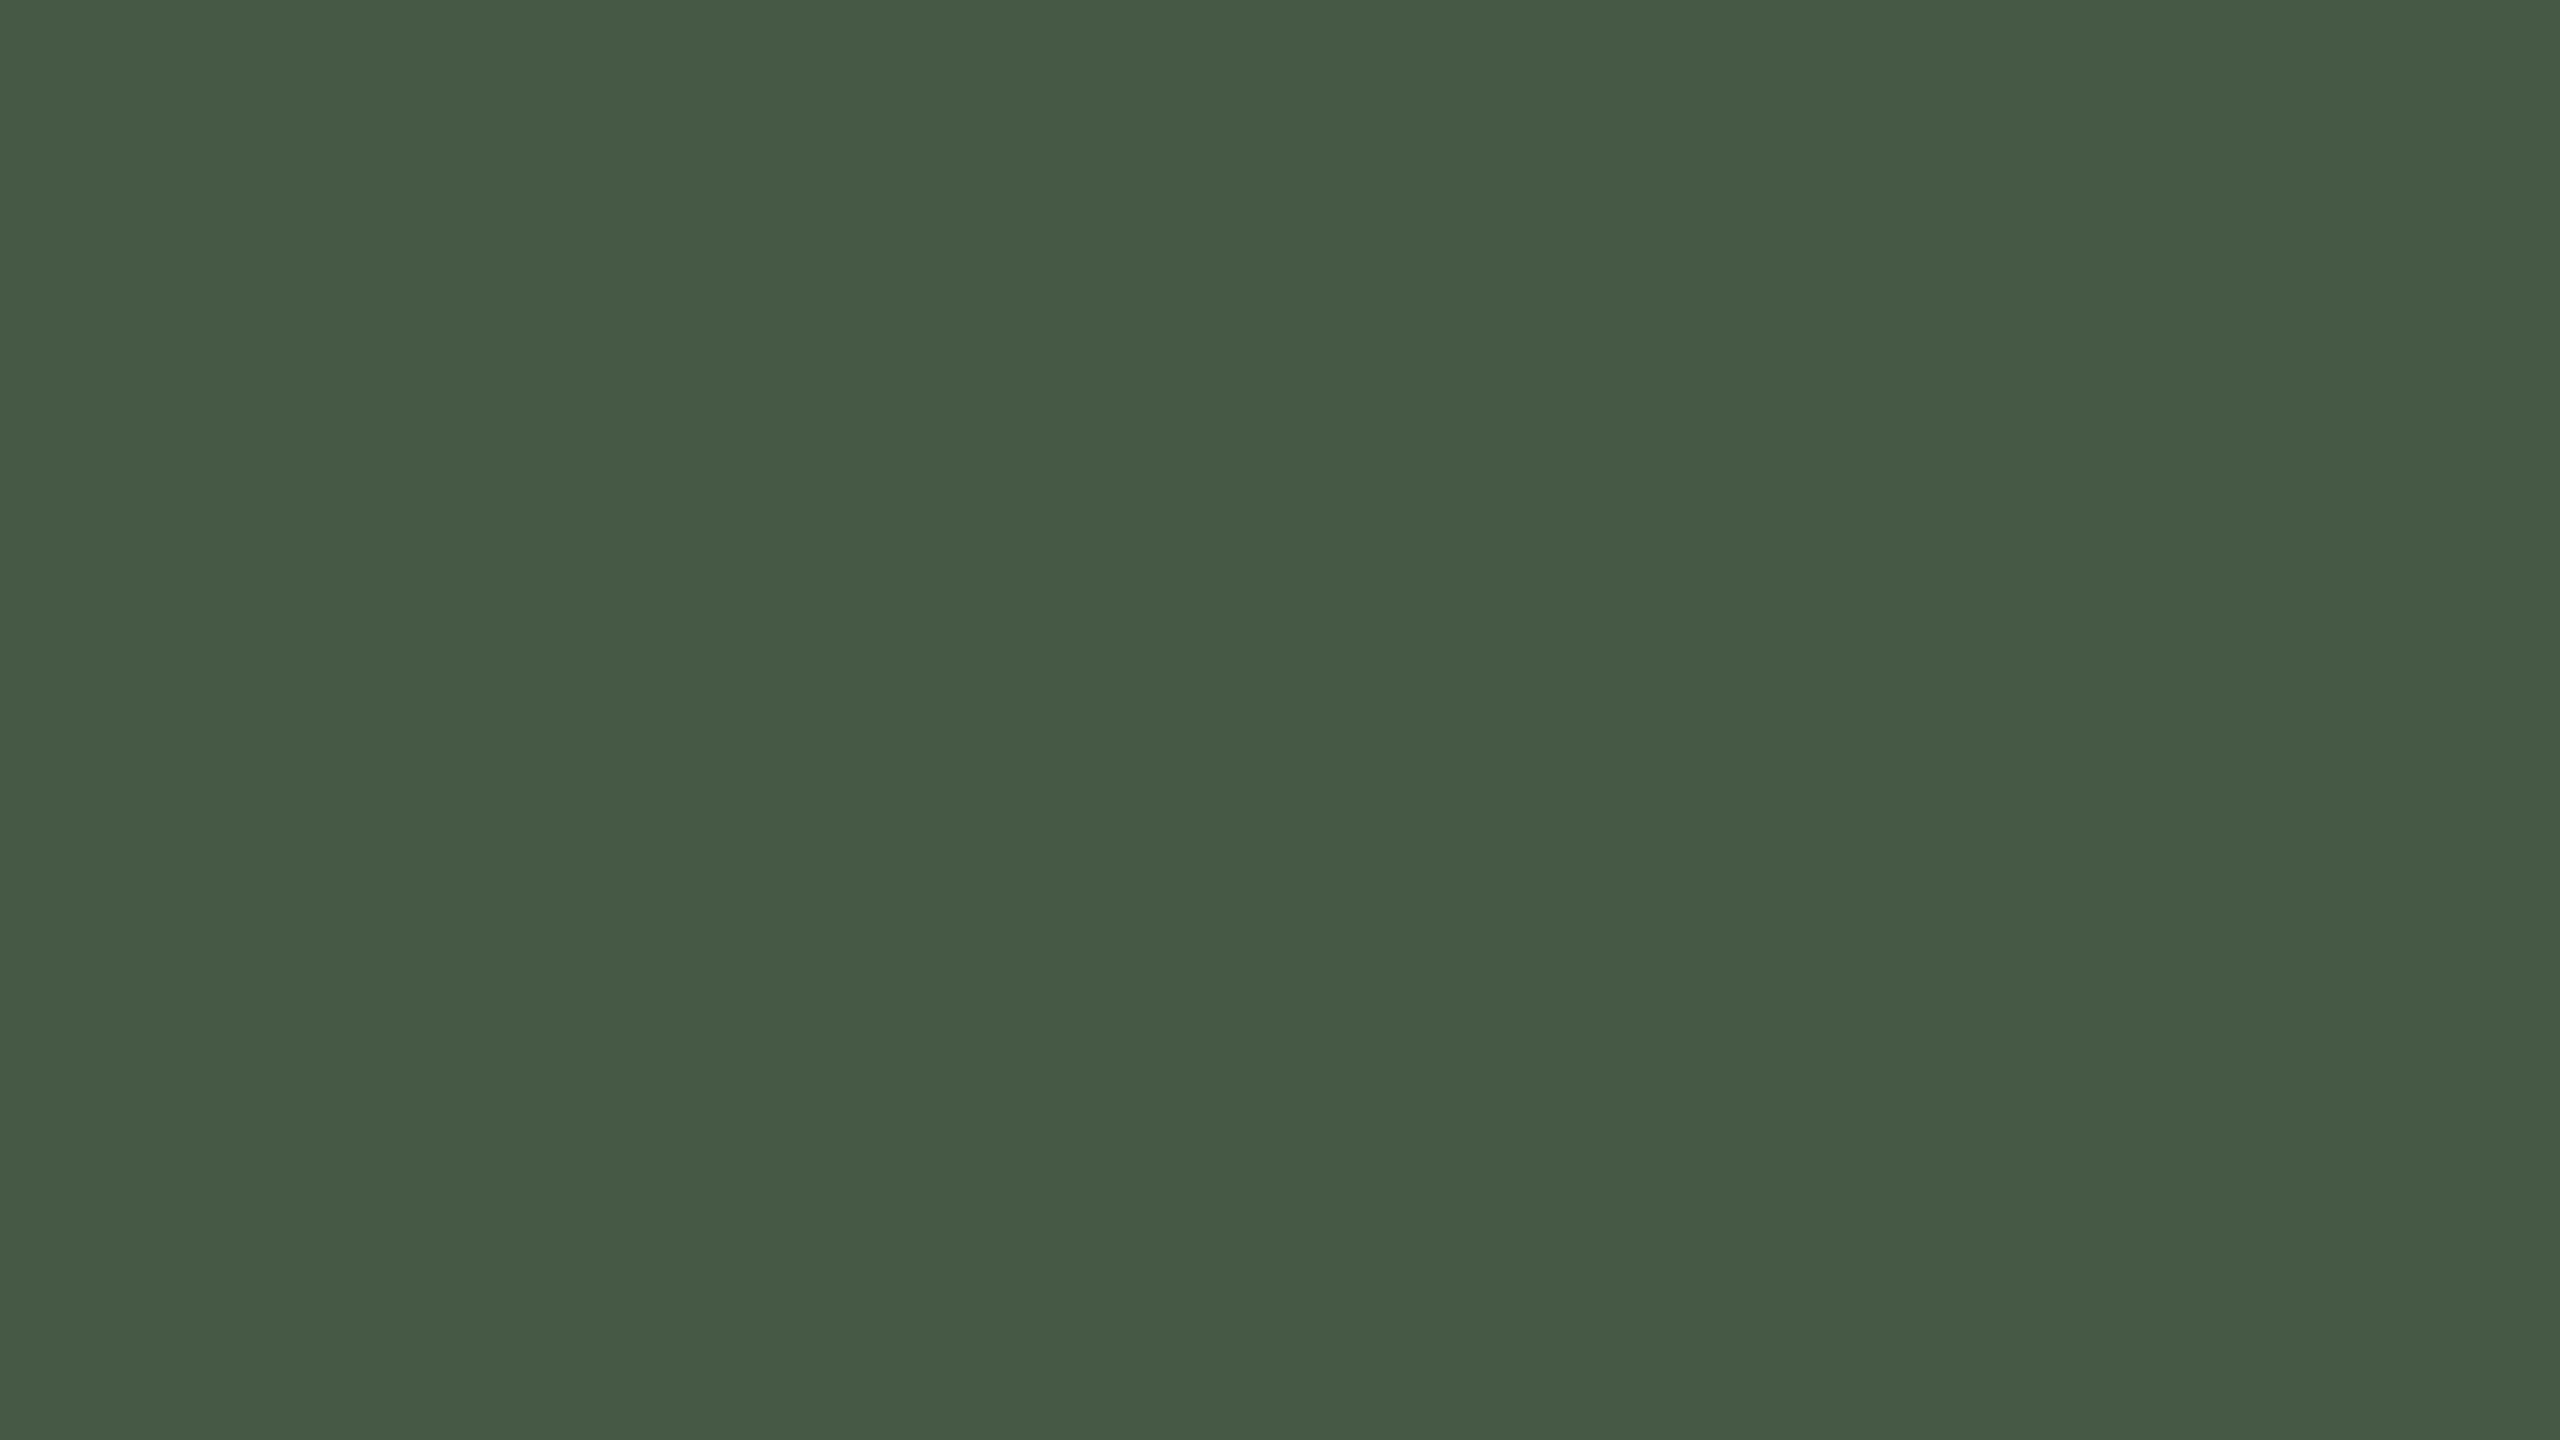 2560x1440 Gray-asparagus Solid Color Background